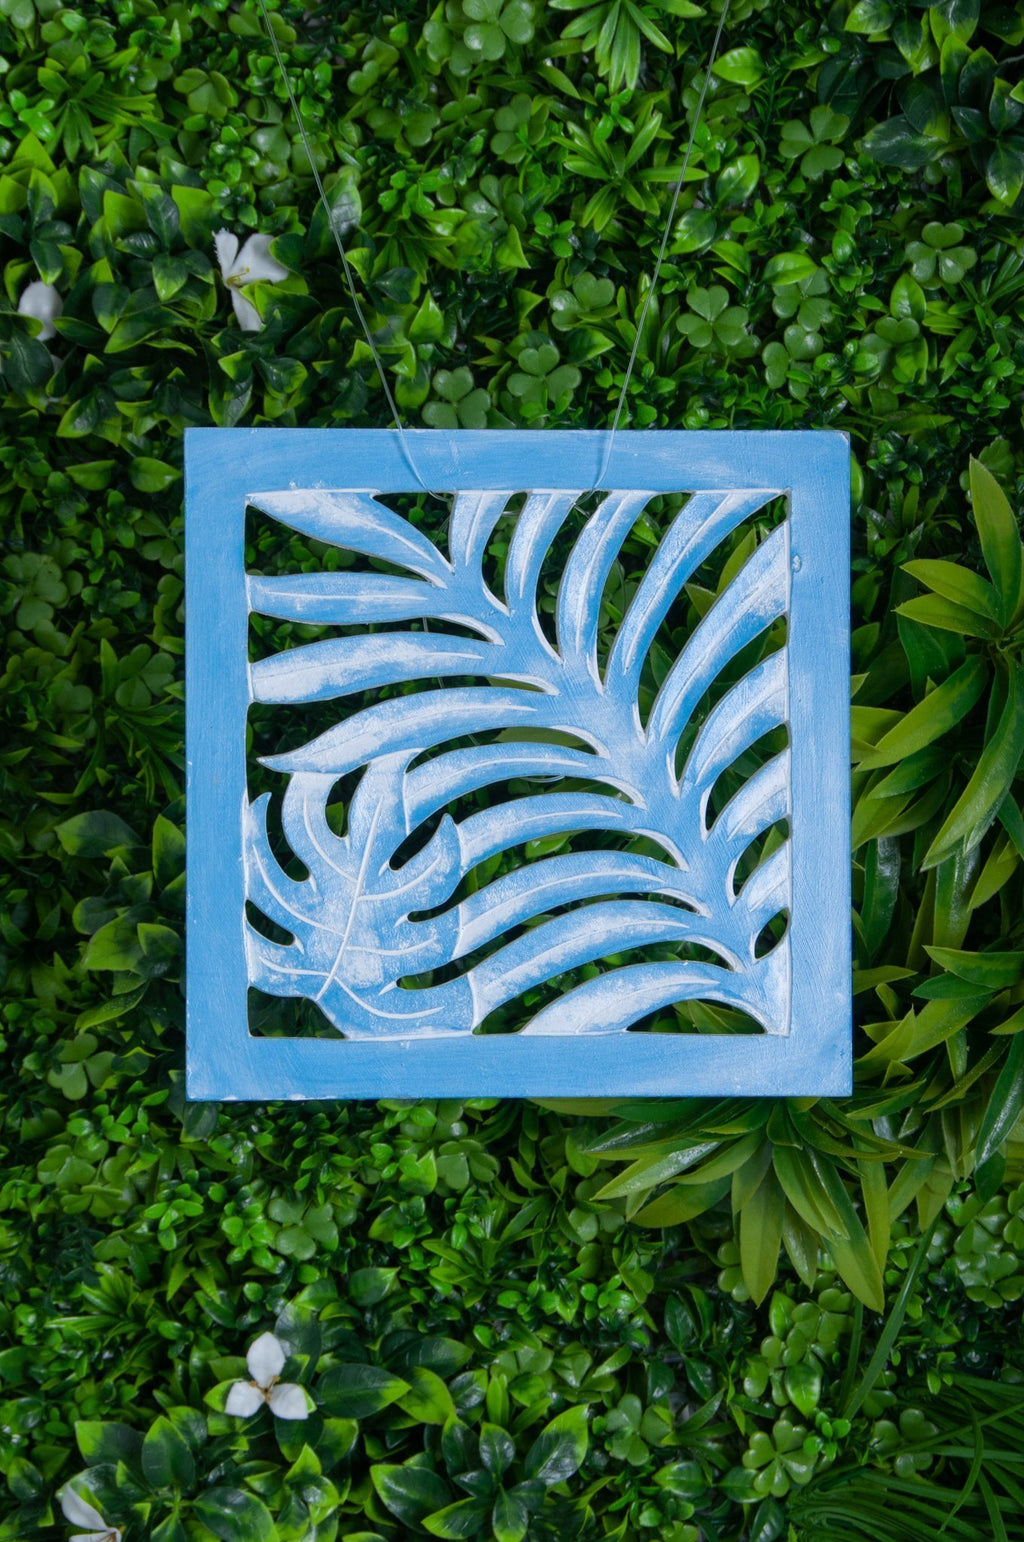 VVLH111 - SQUARE WOOD FERN PANEL 50 x 50cm -BABY BLUE WASH